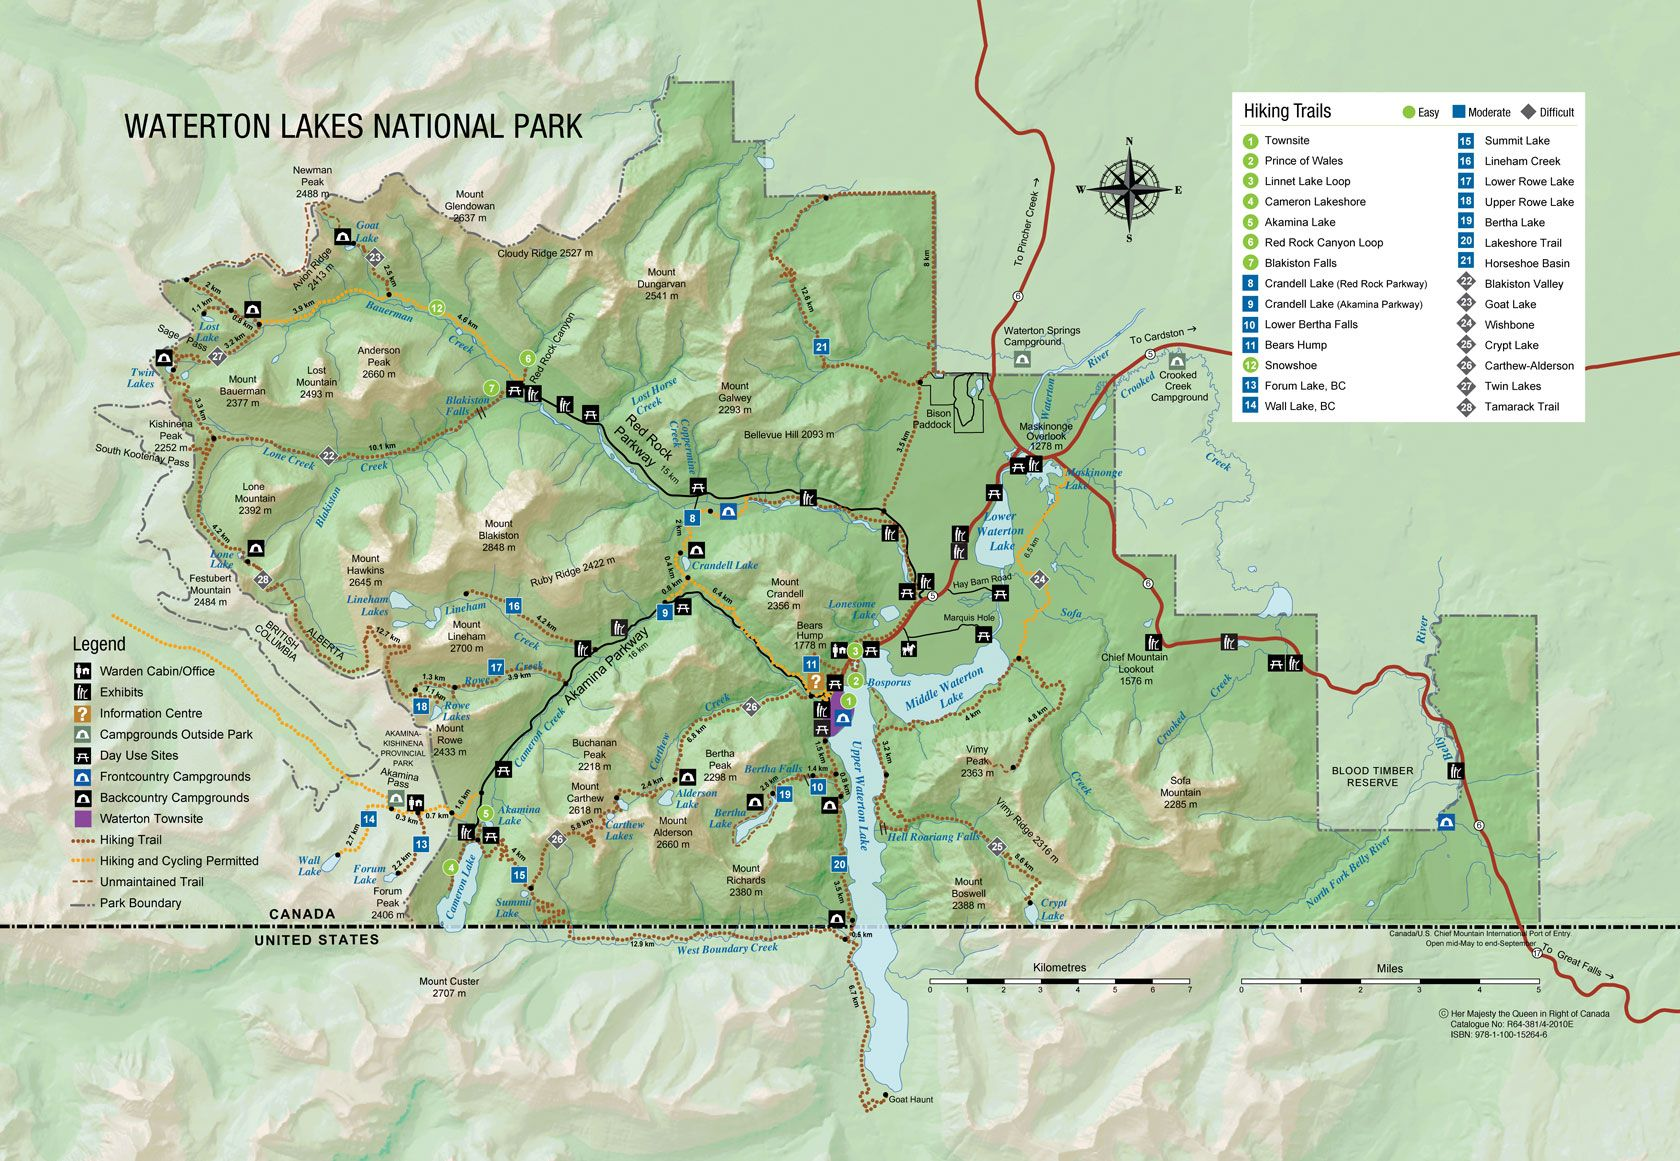 Map Of Waterton National Park Canada Map of Waterton Lakes National Park | Waterton lakes national park